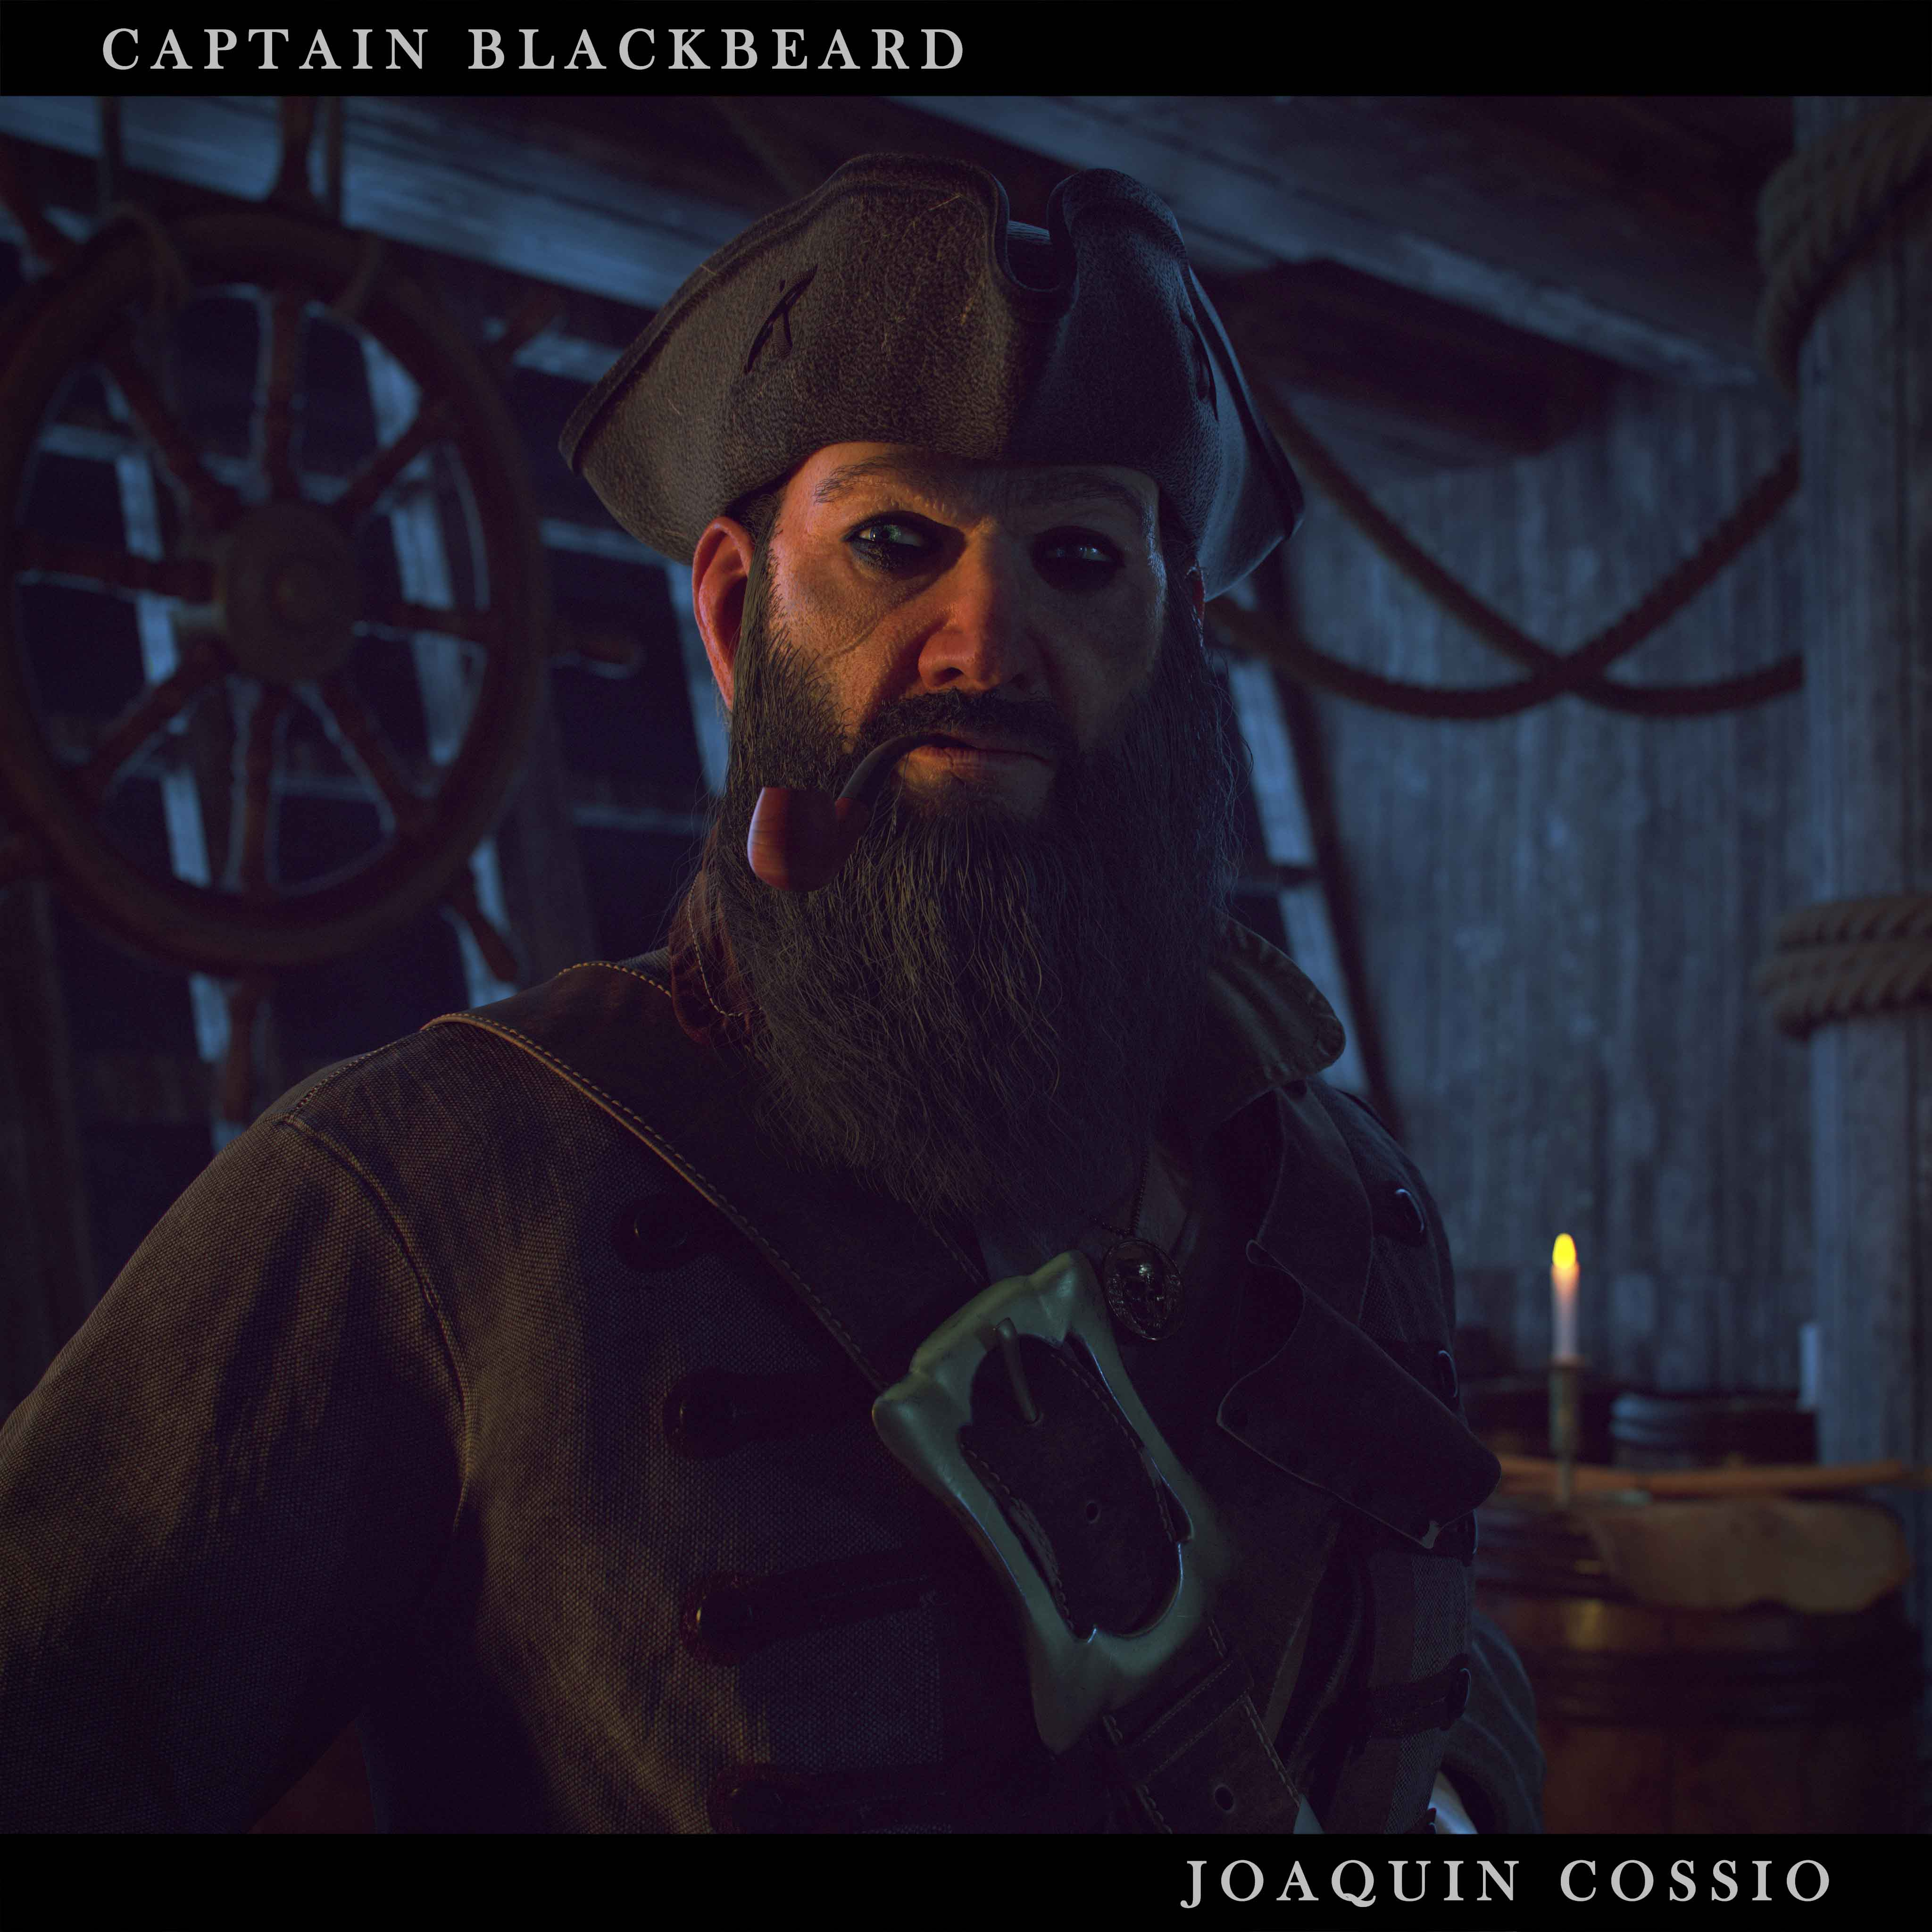 Blackbead_by jcossio_4K.jpg